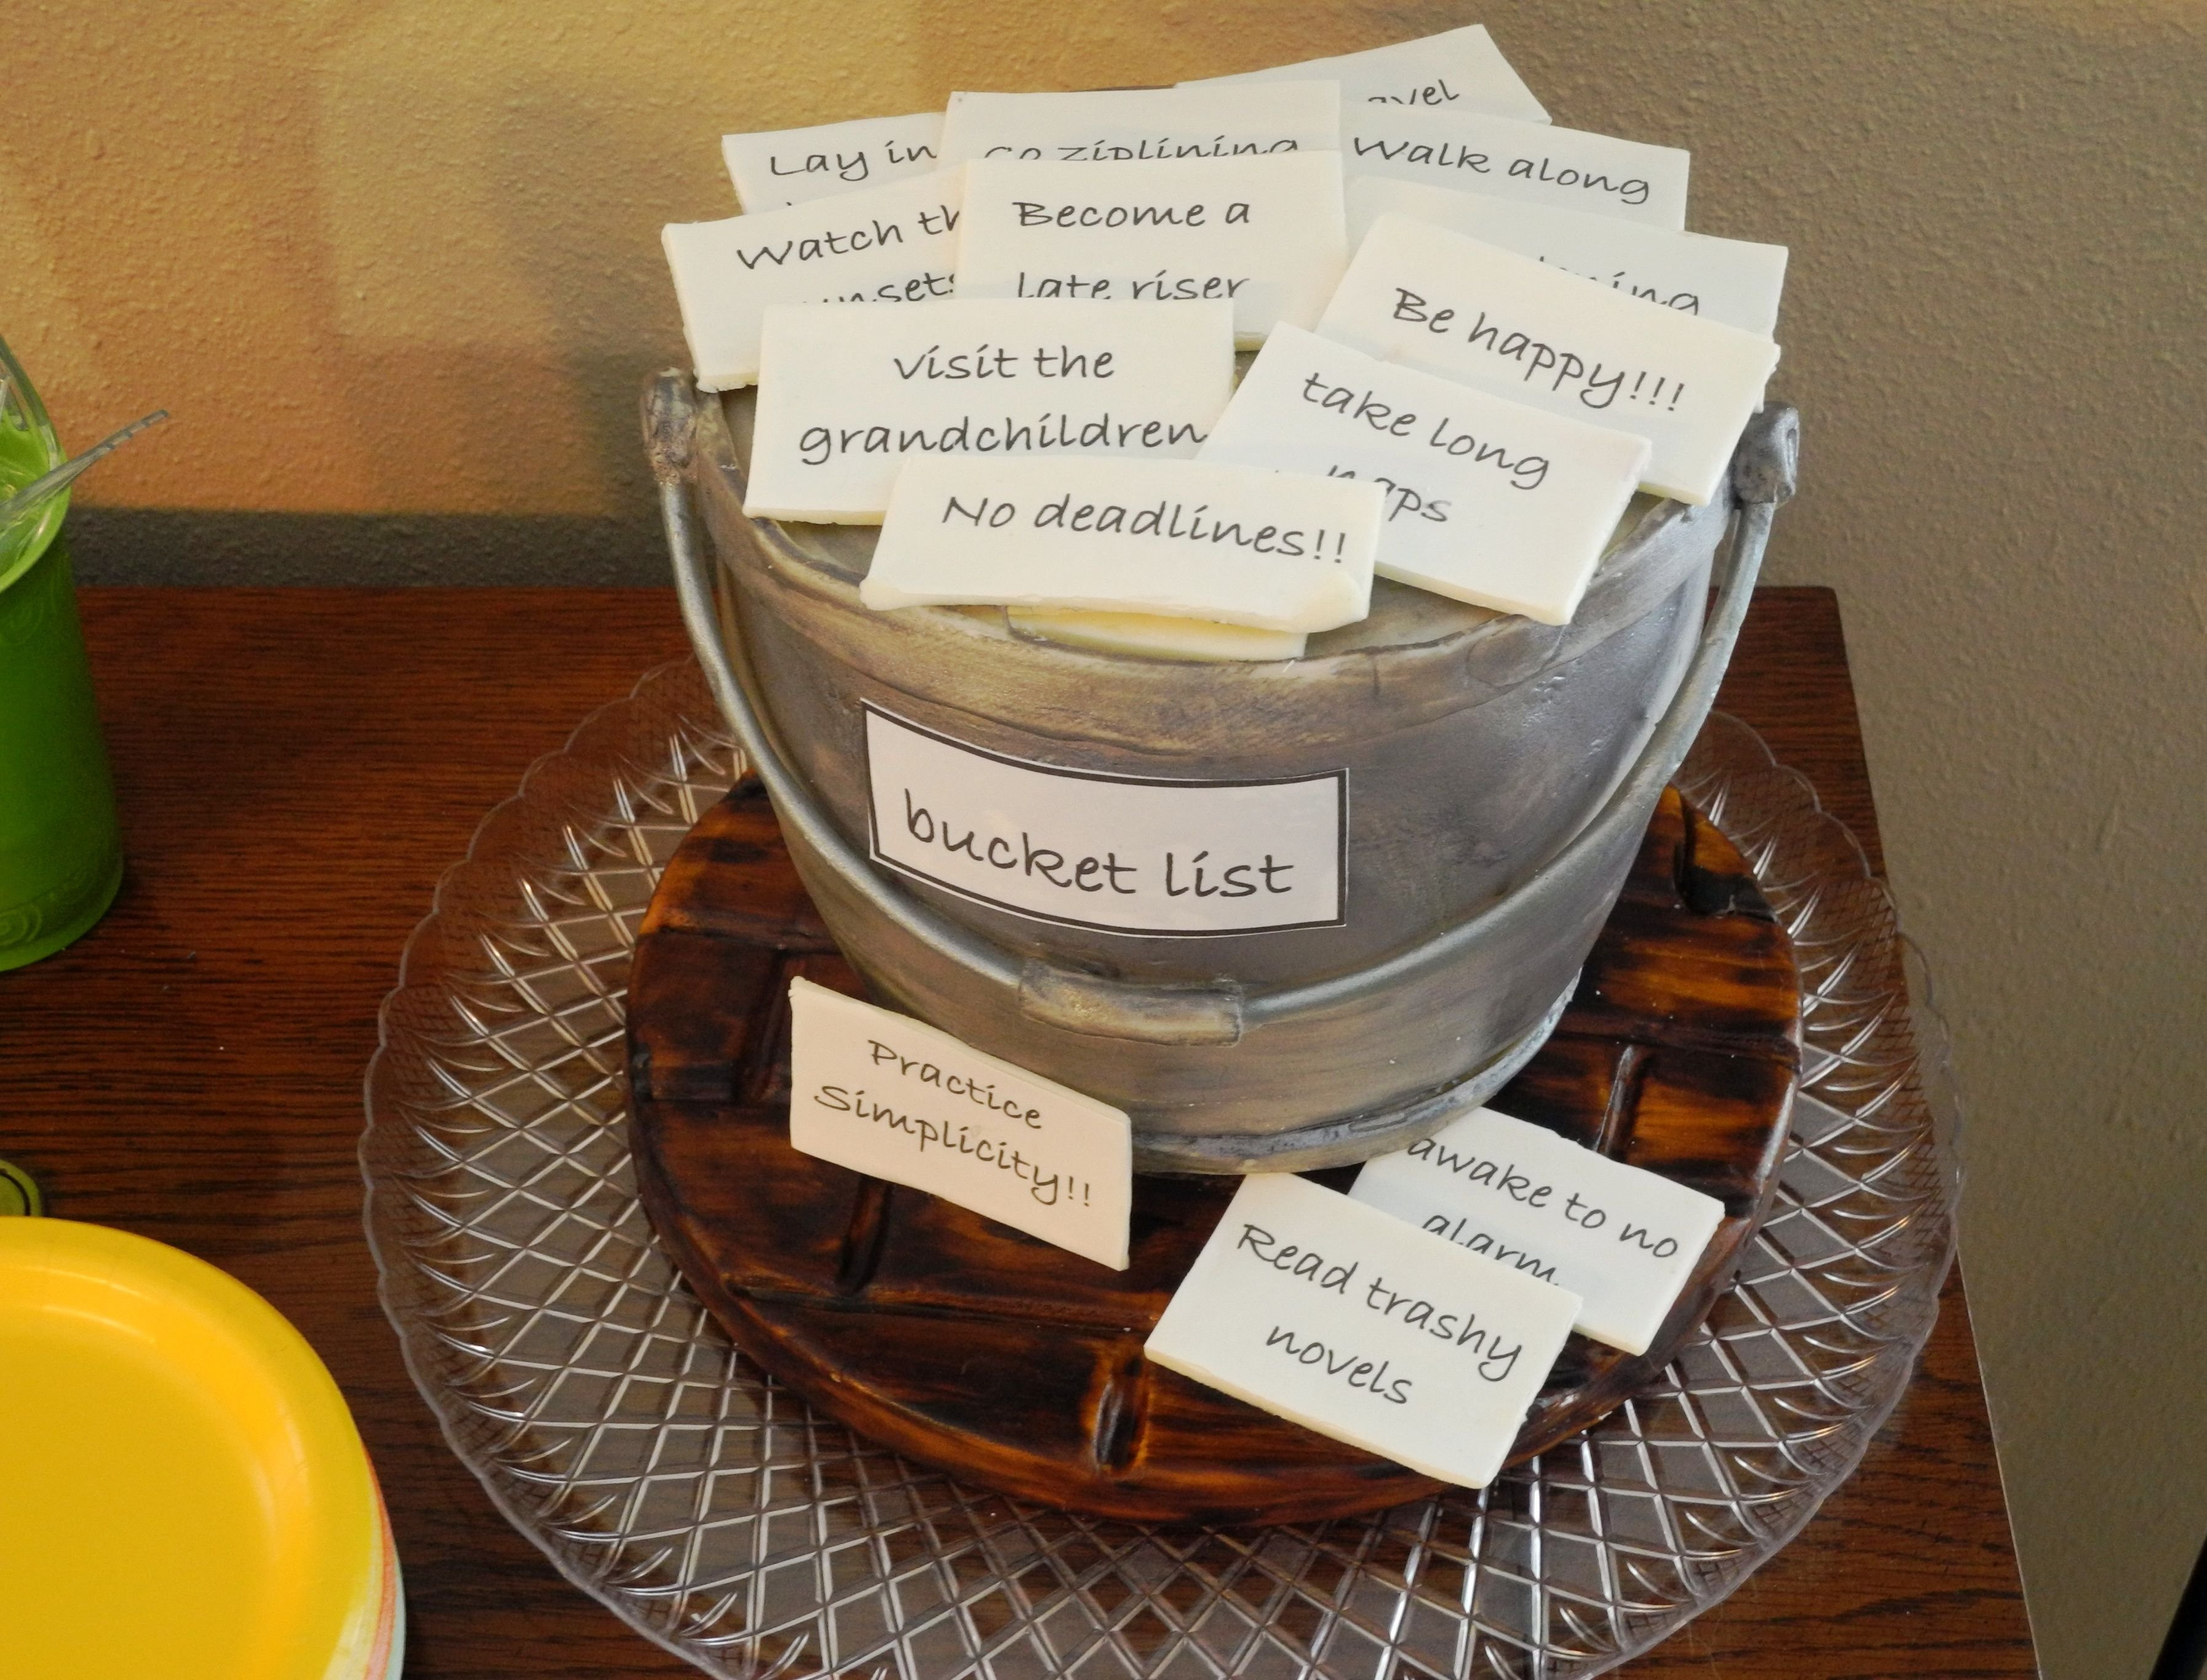 10 Most Recommended Ideas For A Retirement Party create bucket list what should joan do now that shes retired 2020